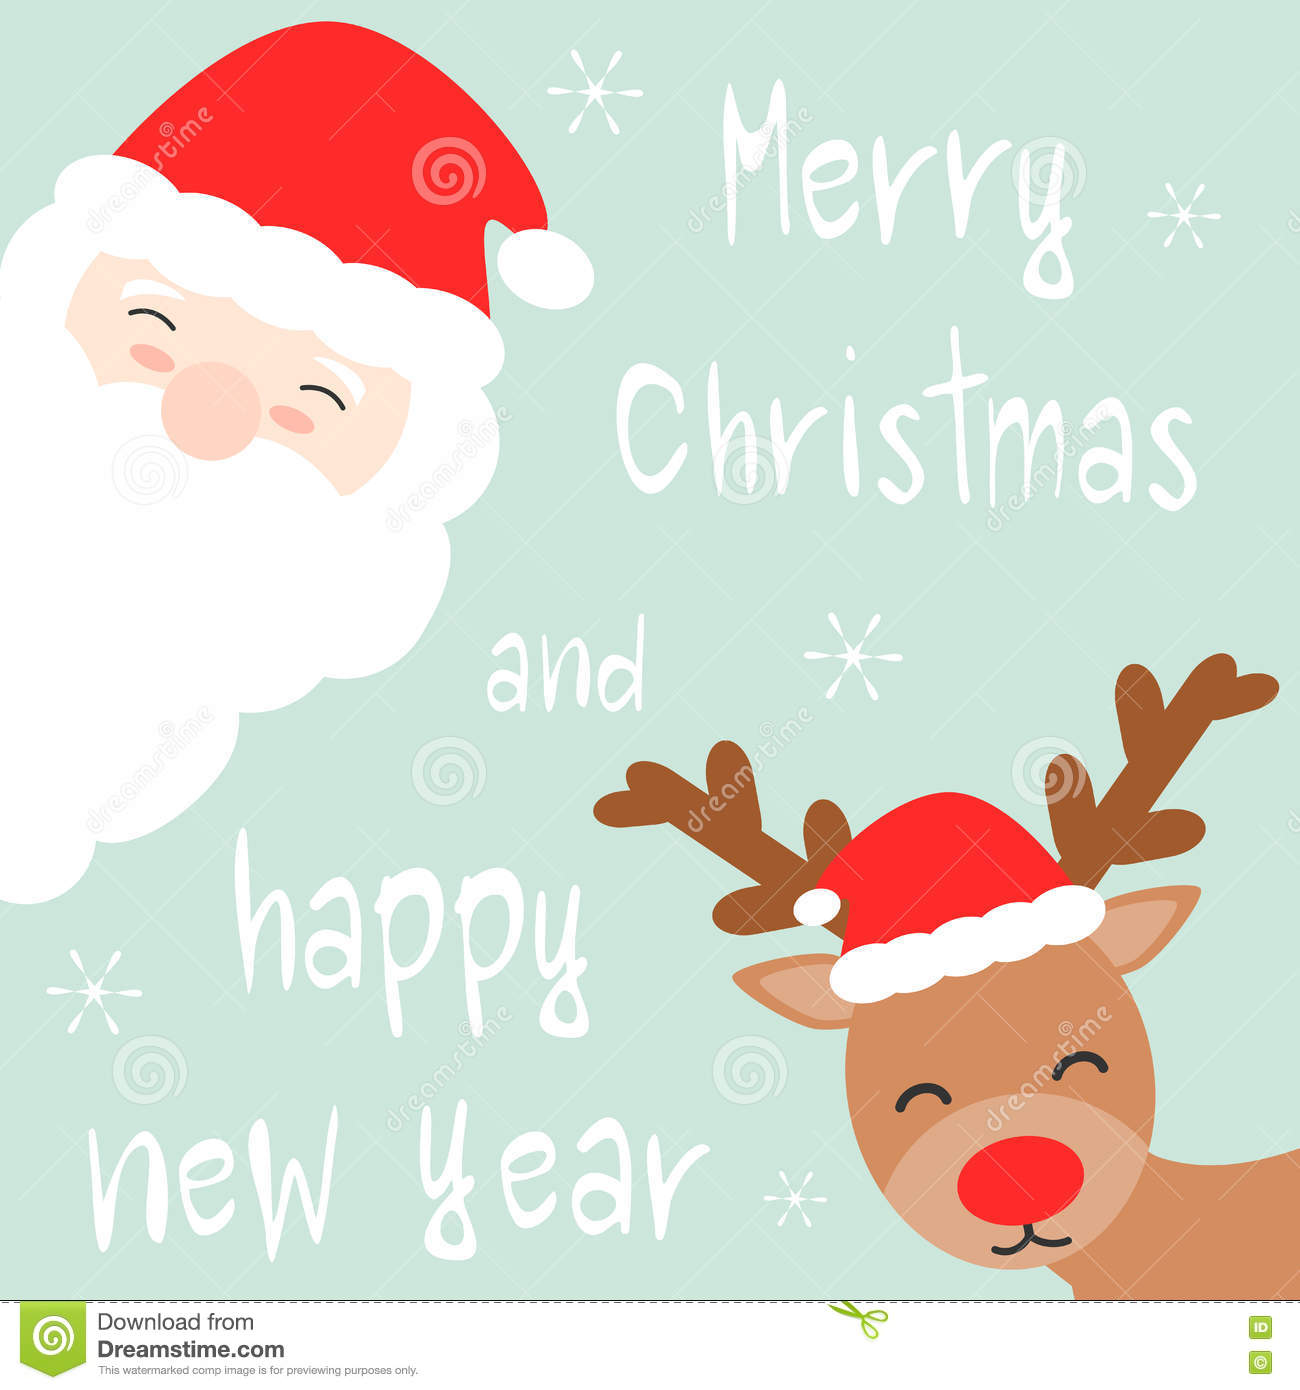 merry christmas and happy new year latest news images and photos crypticimages